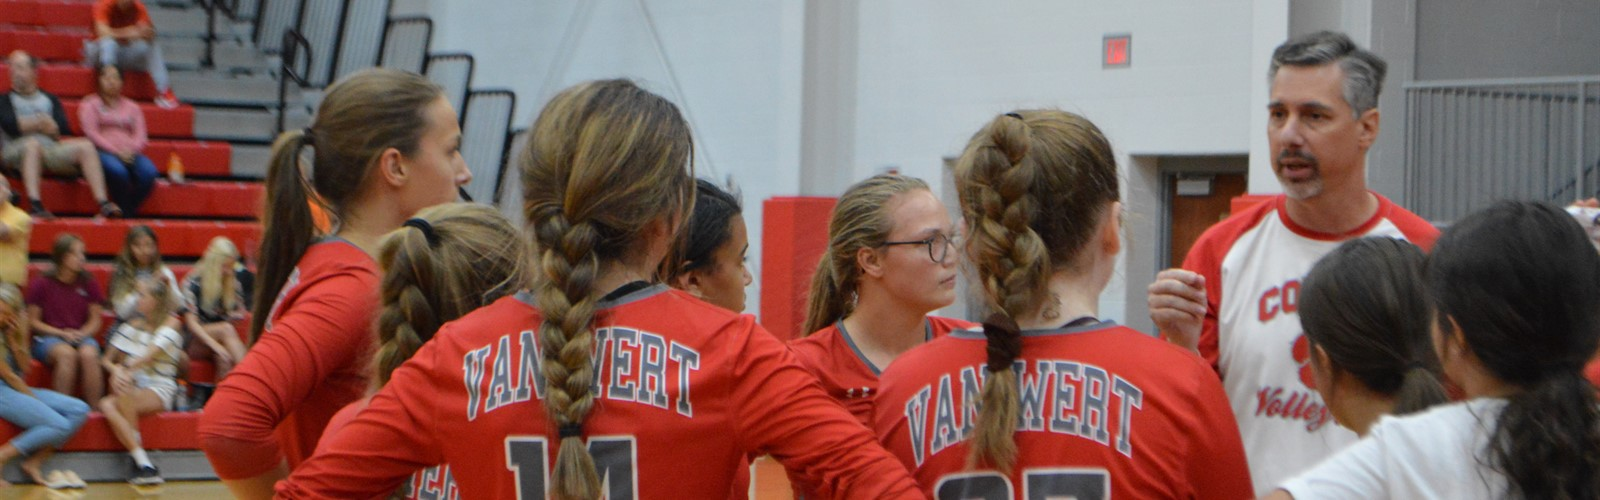 Van Wert junior varsity volleyball athletes receive advice from Coach Krites.